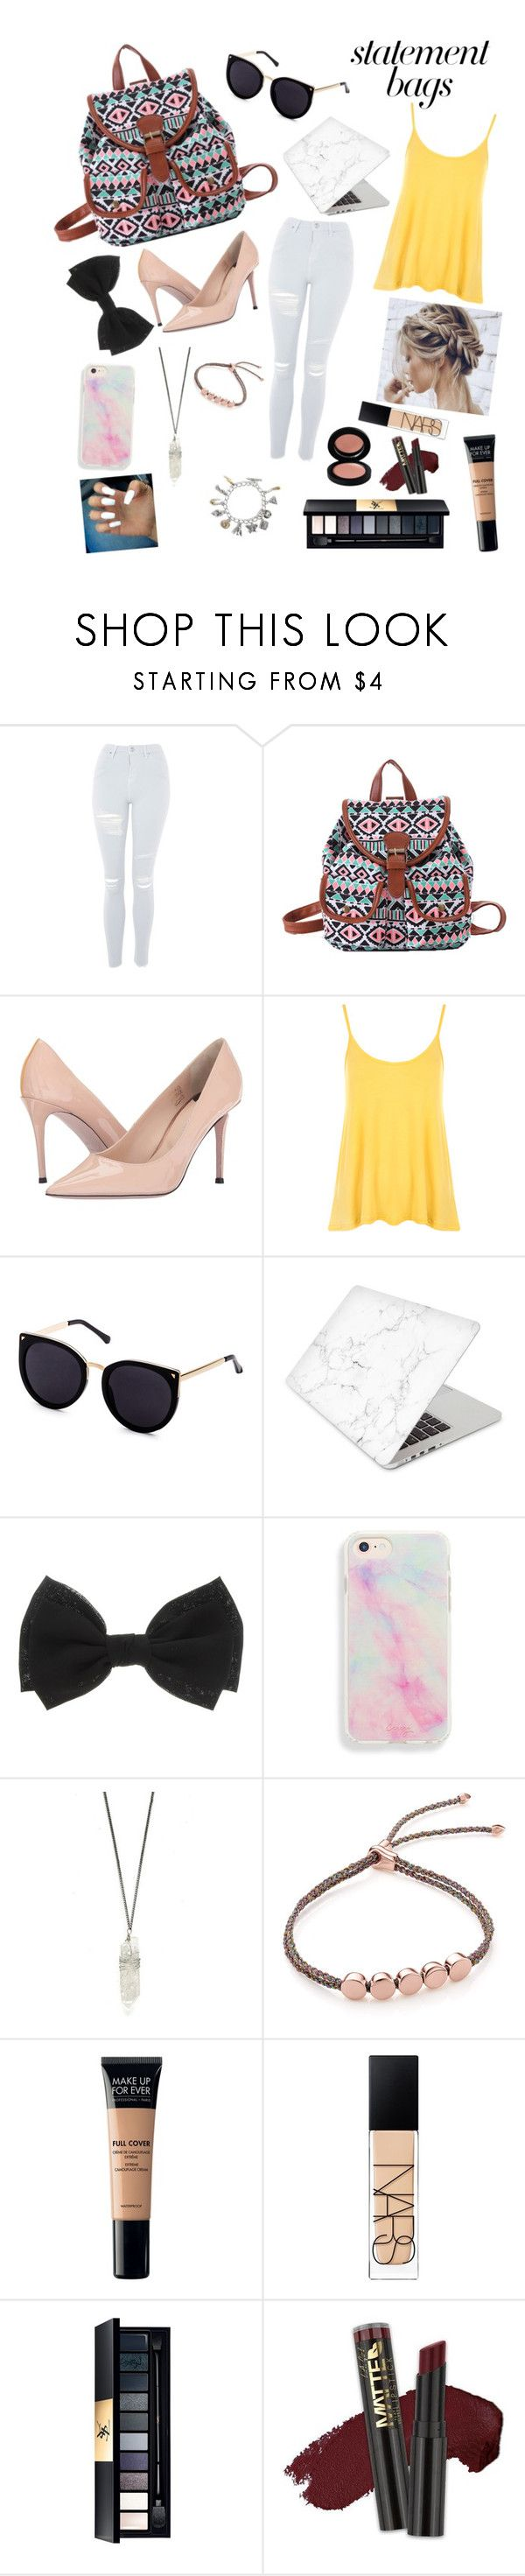 """""""Bag Centerpiece"""" by ggwaffle ❤ liked on Polyvore featuring Topshop, Paul Smith, WearAll, Recover, Monica Vinader, MAKE UP FOR EVER, NARS Cosmetics, John Lewis, L.A. Girl and statementbags"""